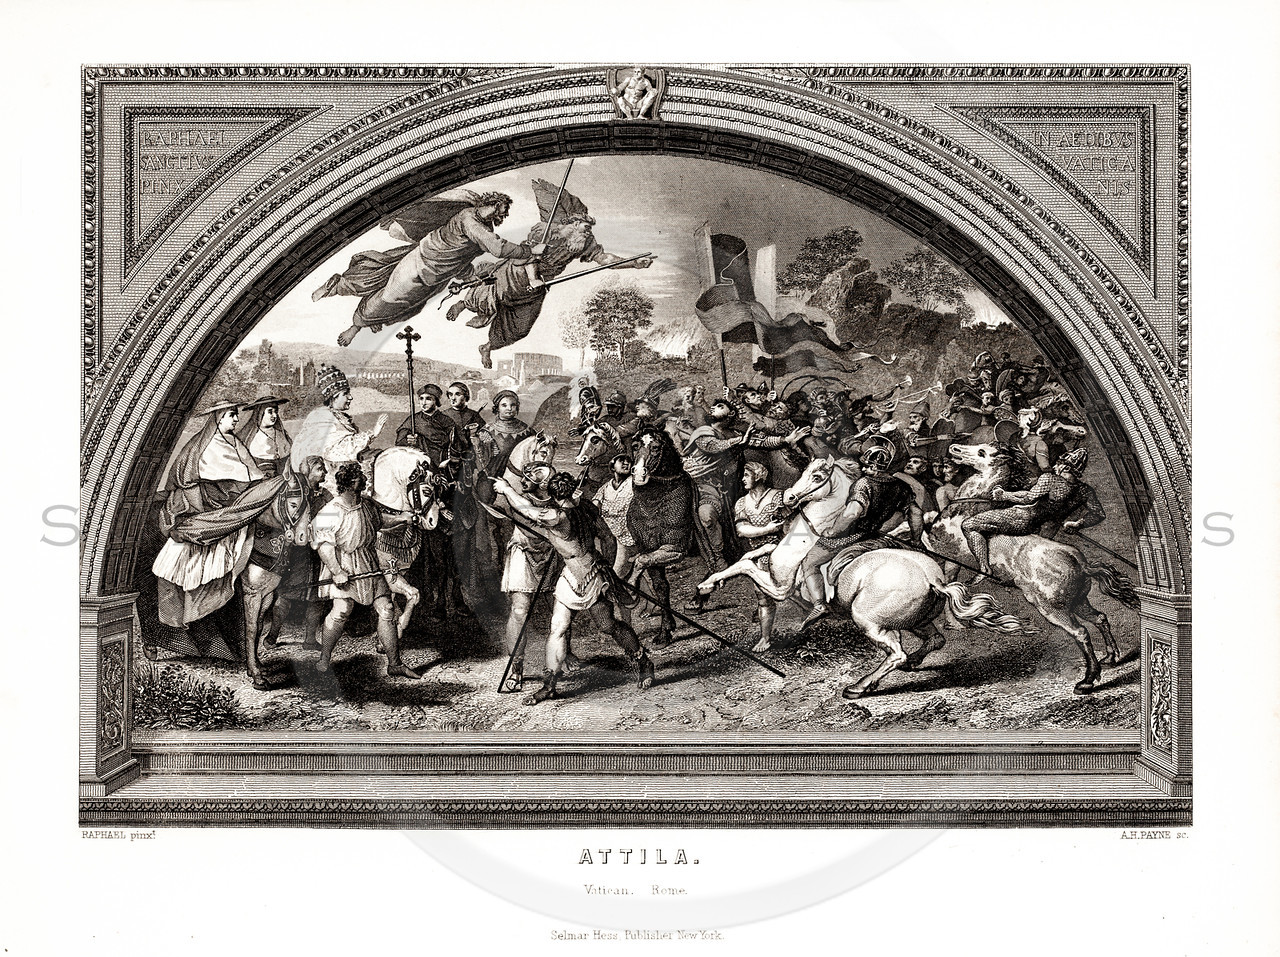 Vintage 1800s Black & White Illustration of a Battle Scene - A PICTORIAL HISTORY OF THE WORLD'S GREATEST NATION by Charlotte Yonge.